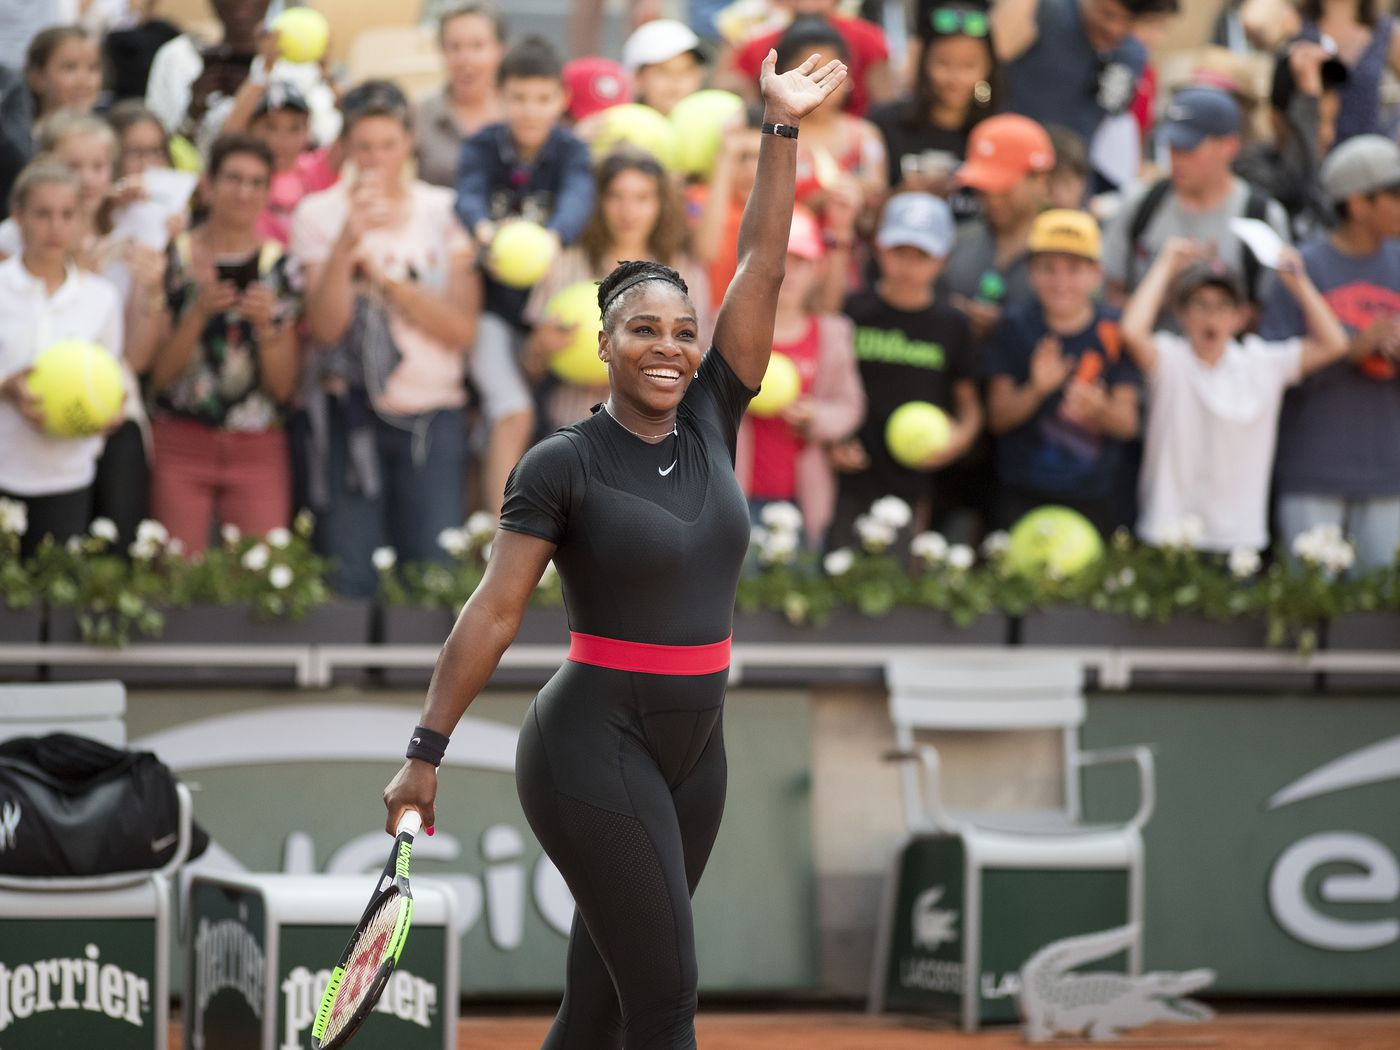 9923053eb39 The Serena Williams catsuit ban shows that tennis can t get past its  elitist roots